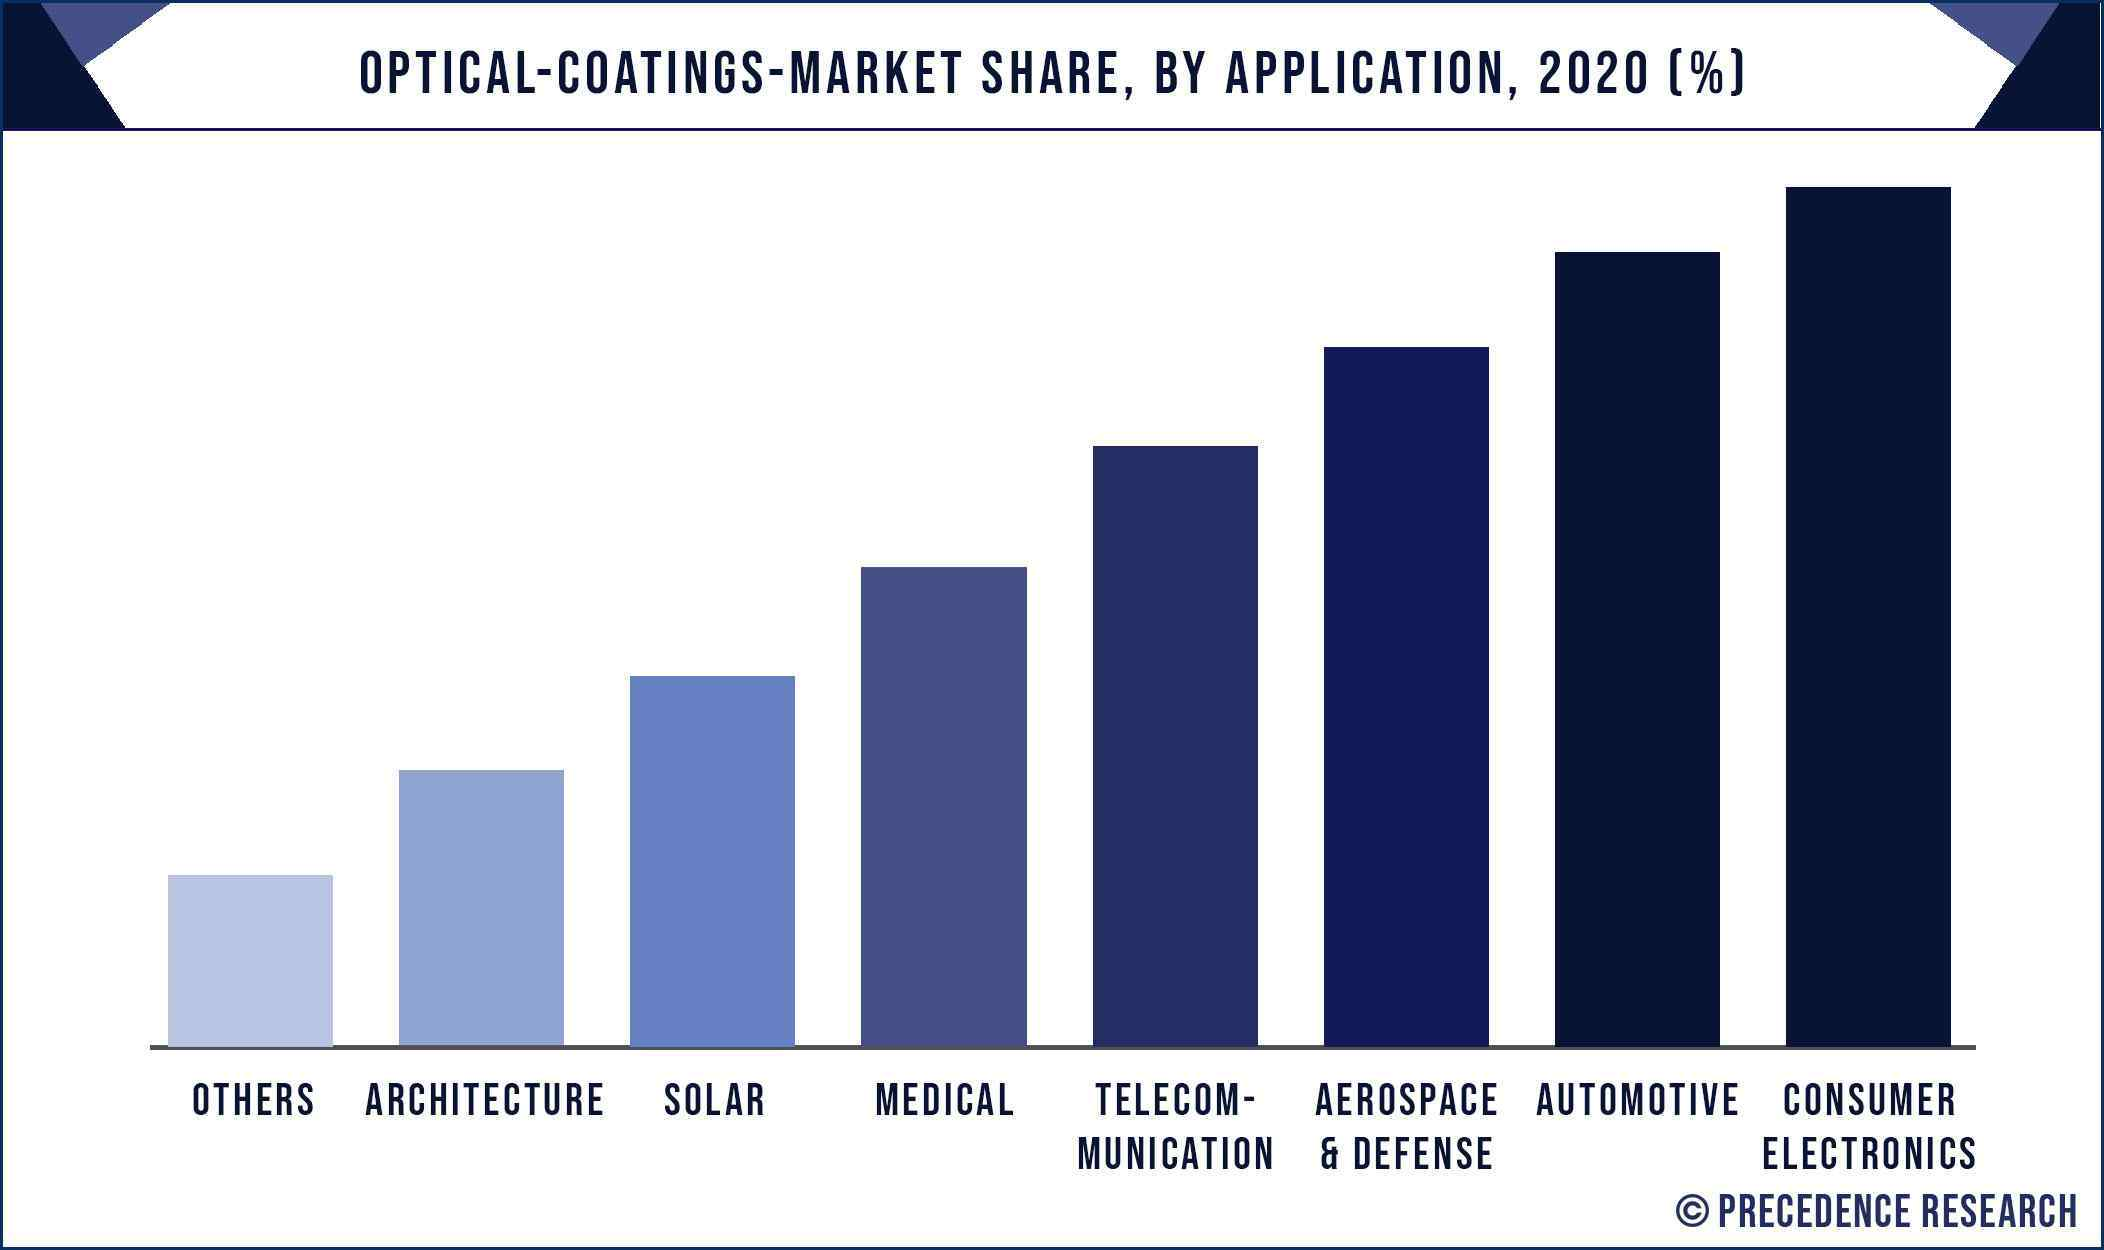 Optical Coatings Market Share, By Application, 2020 (%)